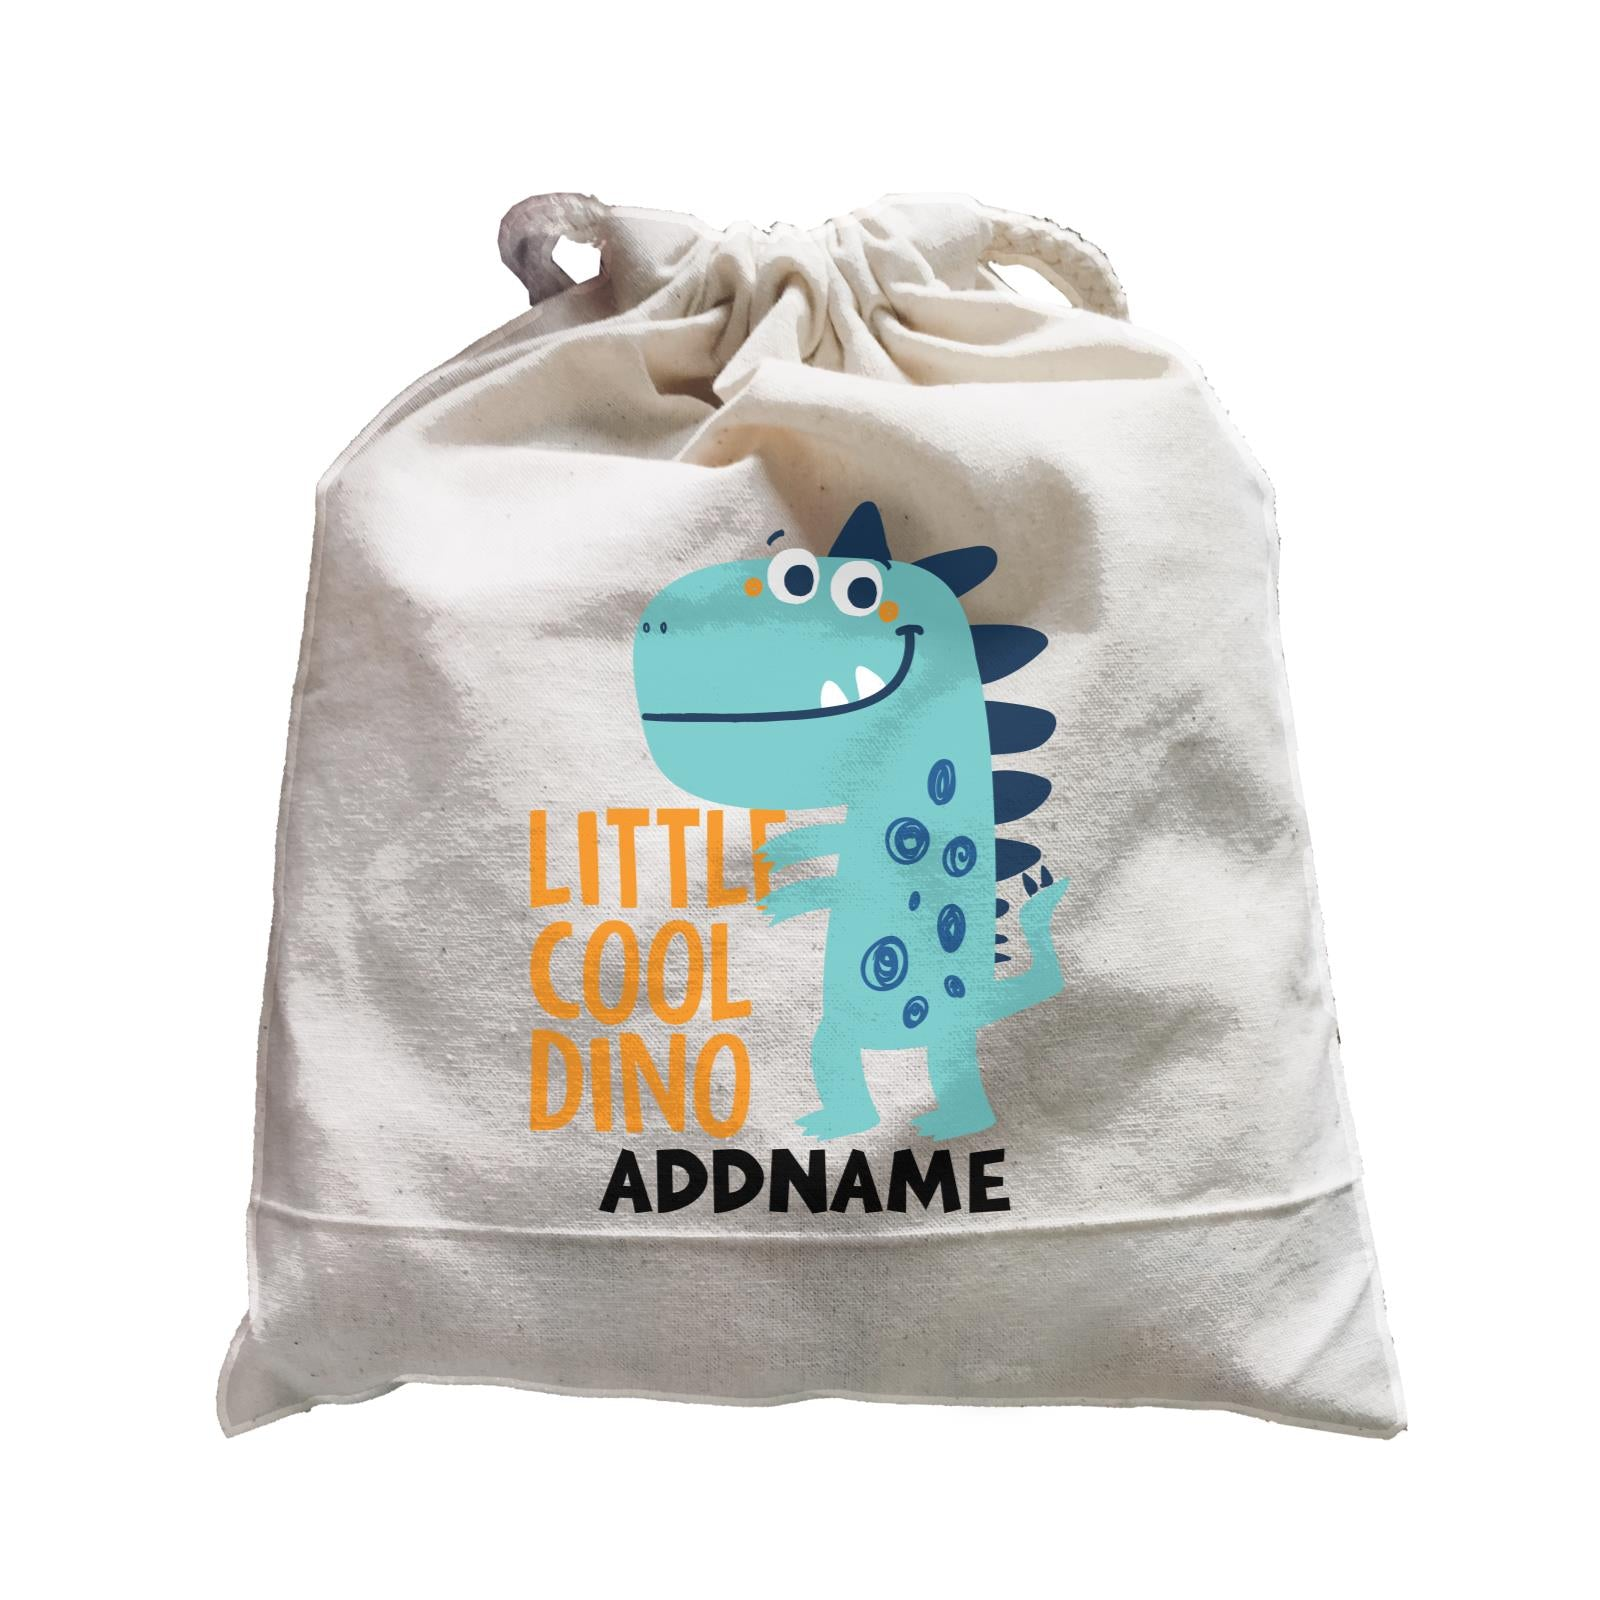 Little Cool Dino Addname Bag Satchel